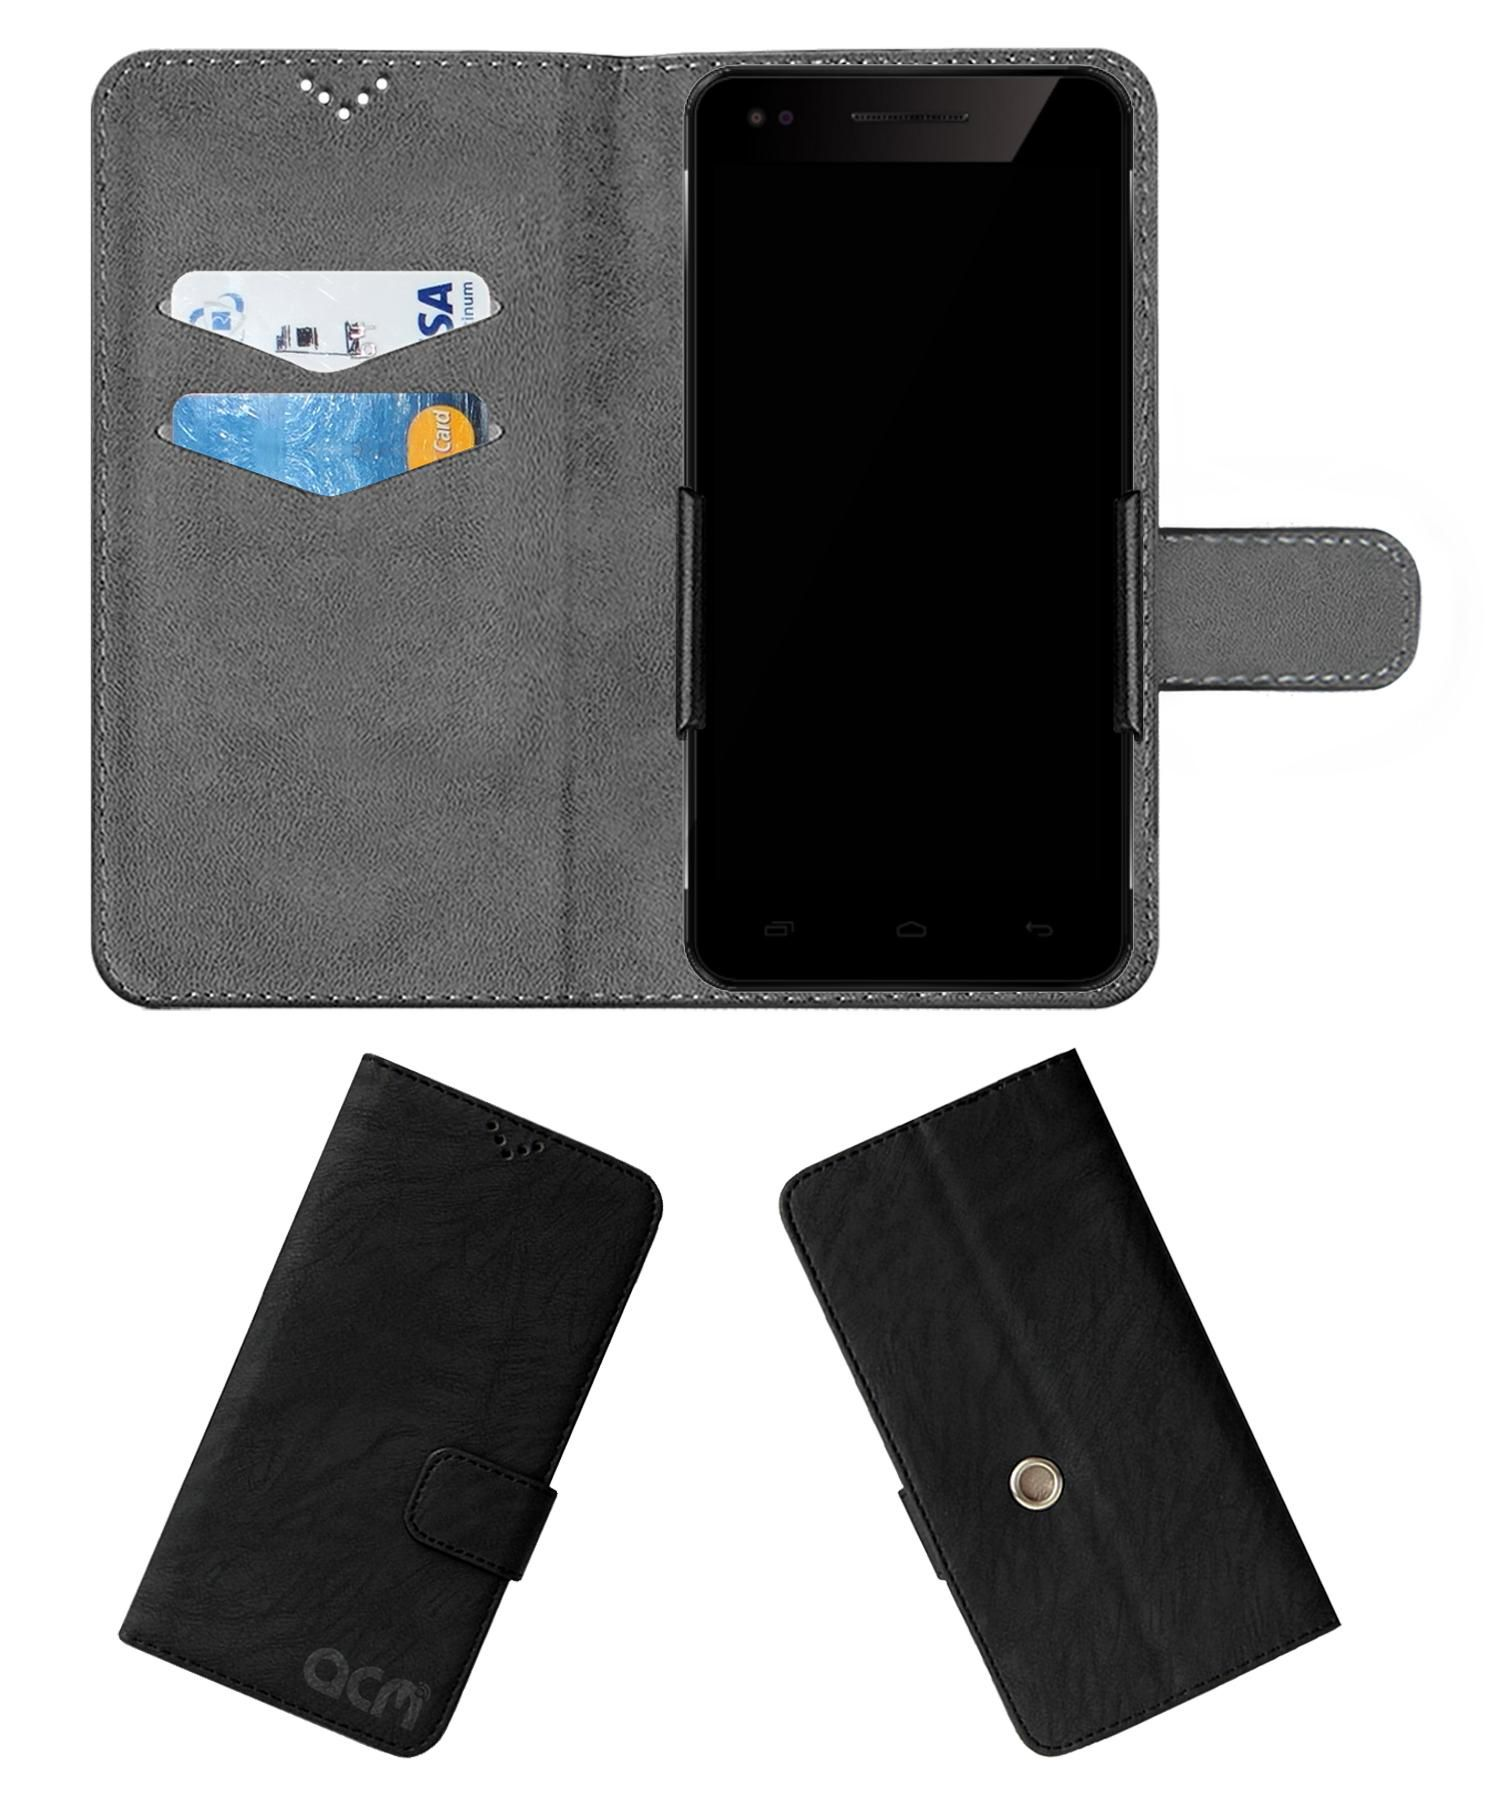 Micromax Canvas Hue 2 Flip Cover by ACM - Black Clip holder to hold your mobile securely